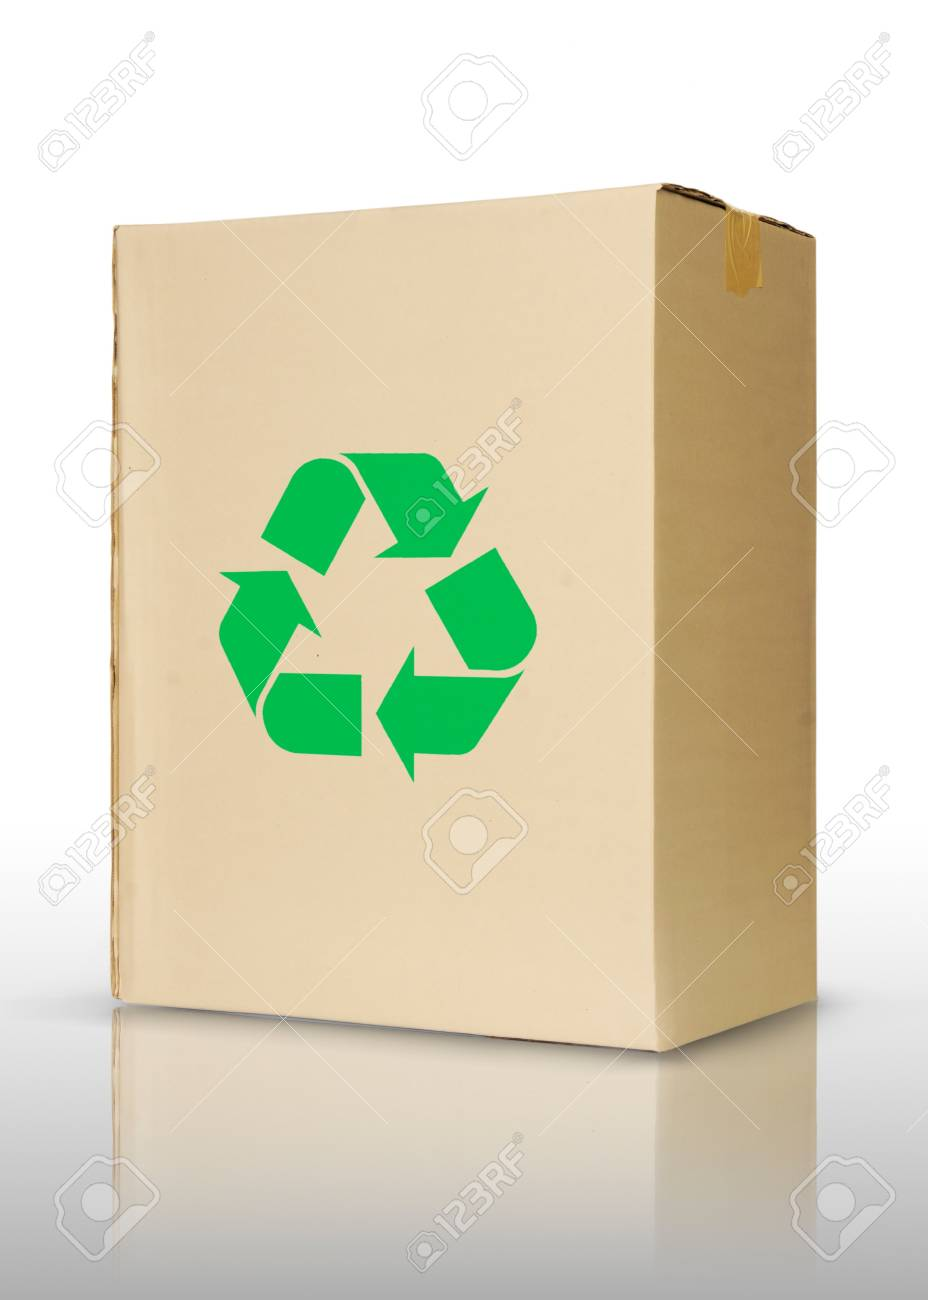 Cardboard box with recycling symbol, on a white background. Stock Photo - 10346515